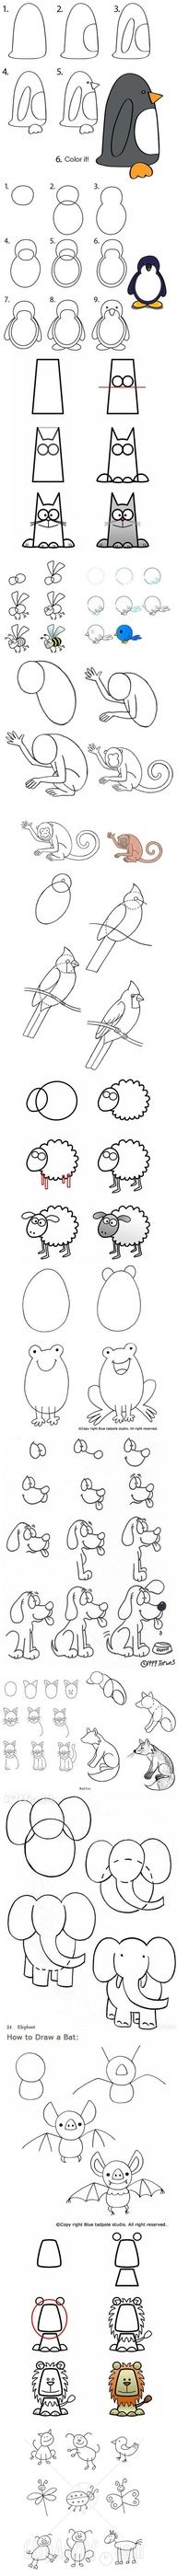 How to draw animals ... will try it when I have some 'quiet time'